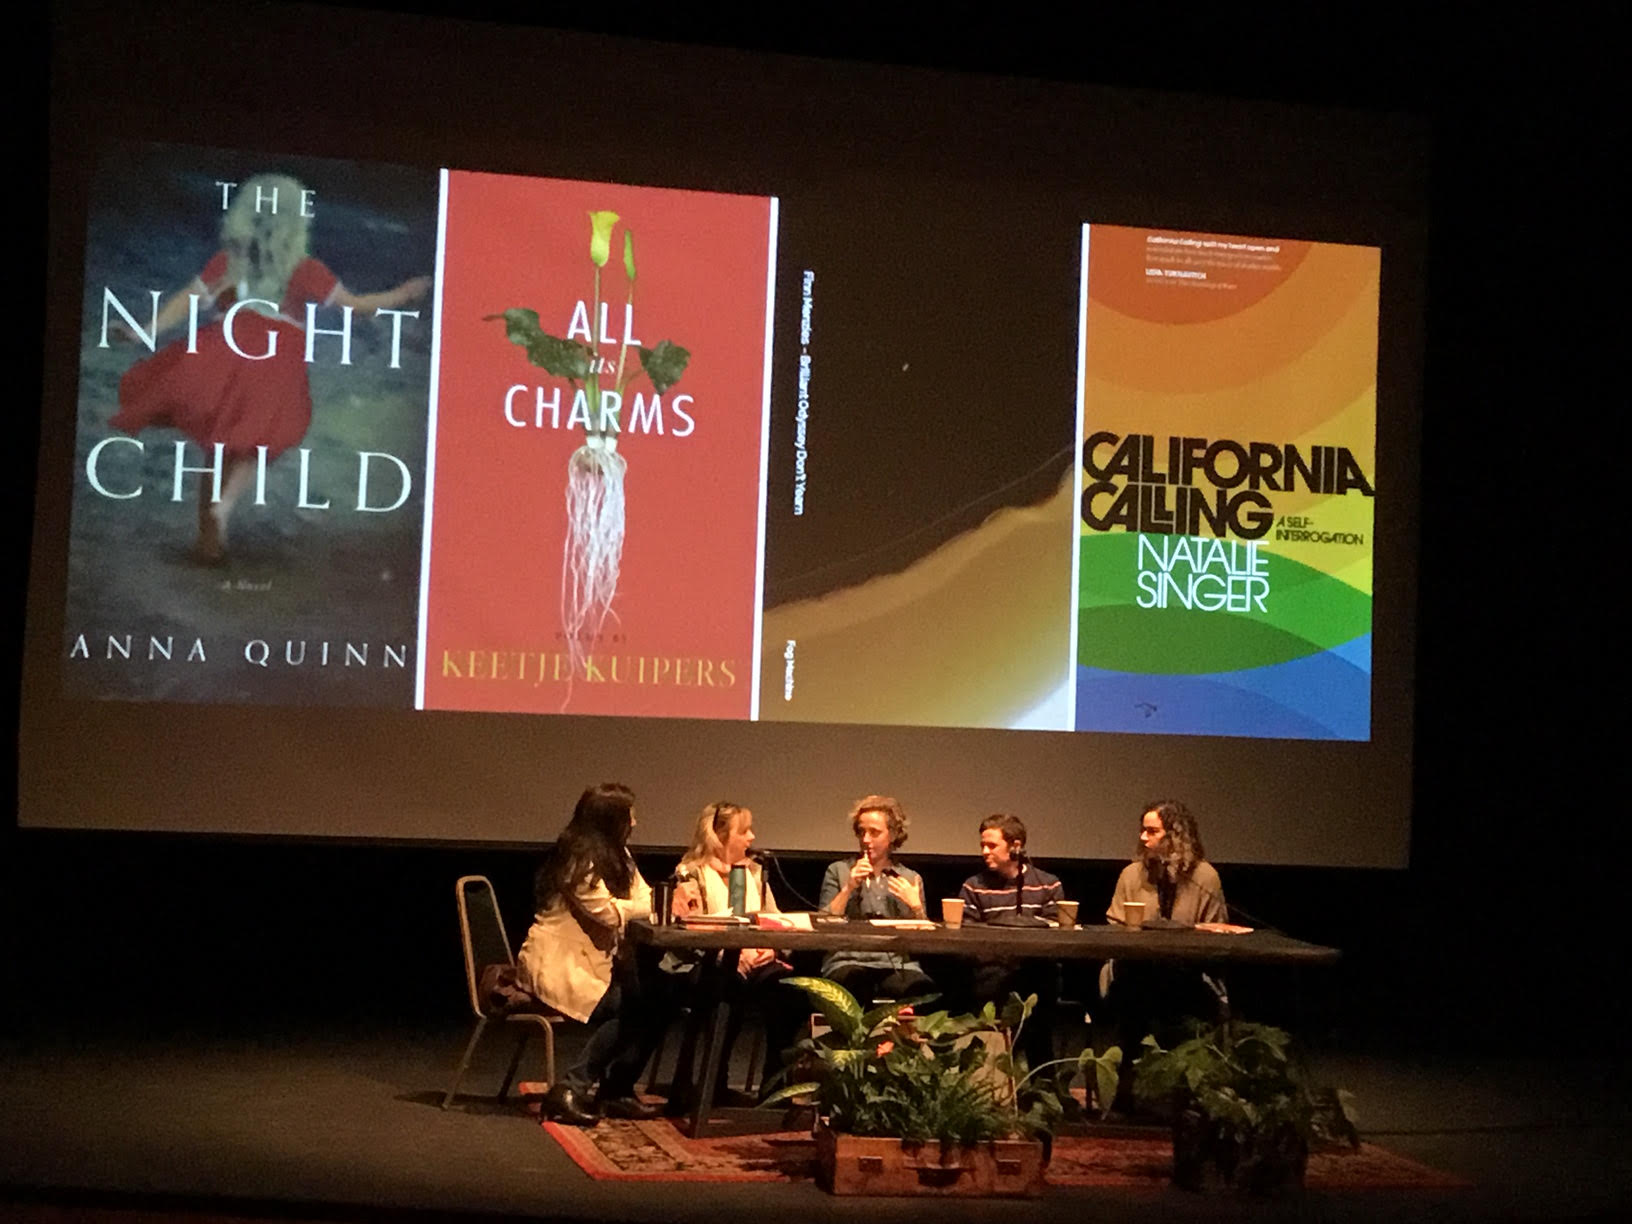 My Body, My Voice 2019 panel w/authors Anna Quinn, Keetje Kuipers, Finn Menzies, Natalie Singer